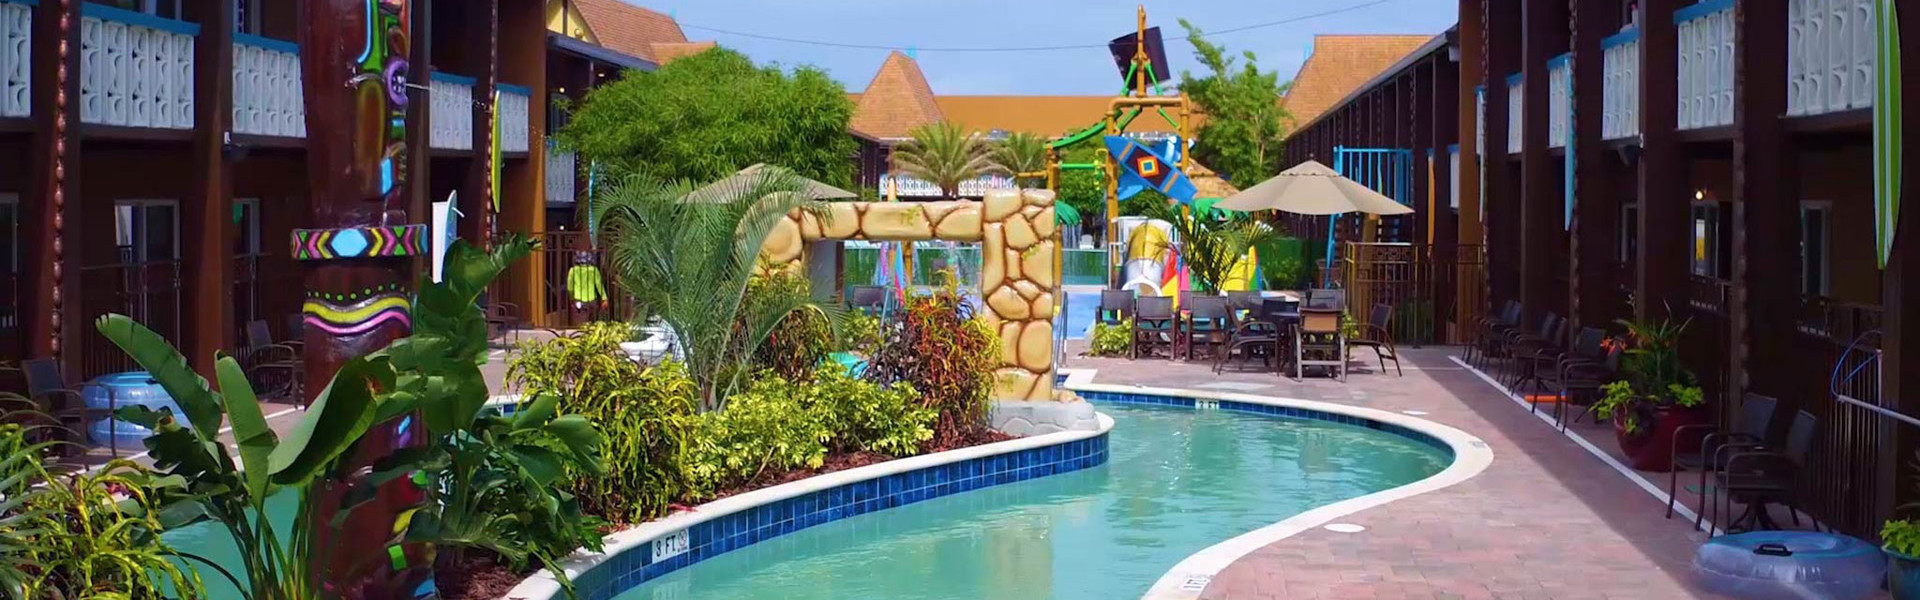 Water Parks Resort in Florida at our Hotel near Cocoa Beach | Girl at Water Park